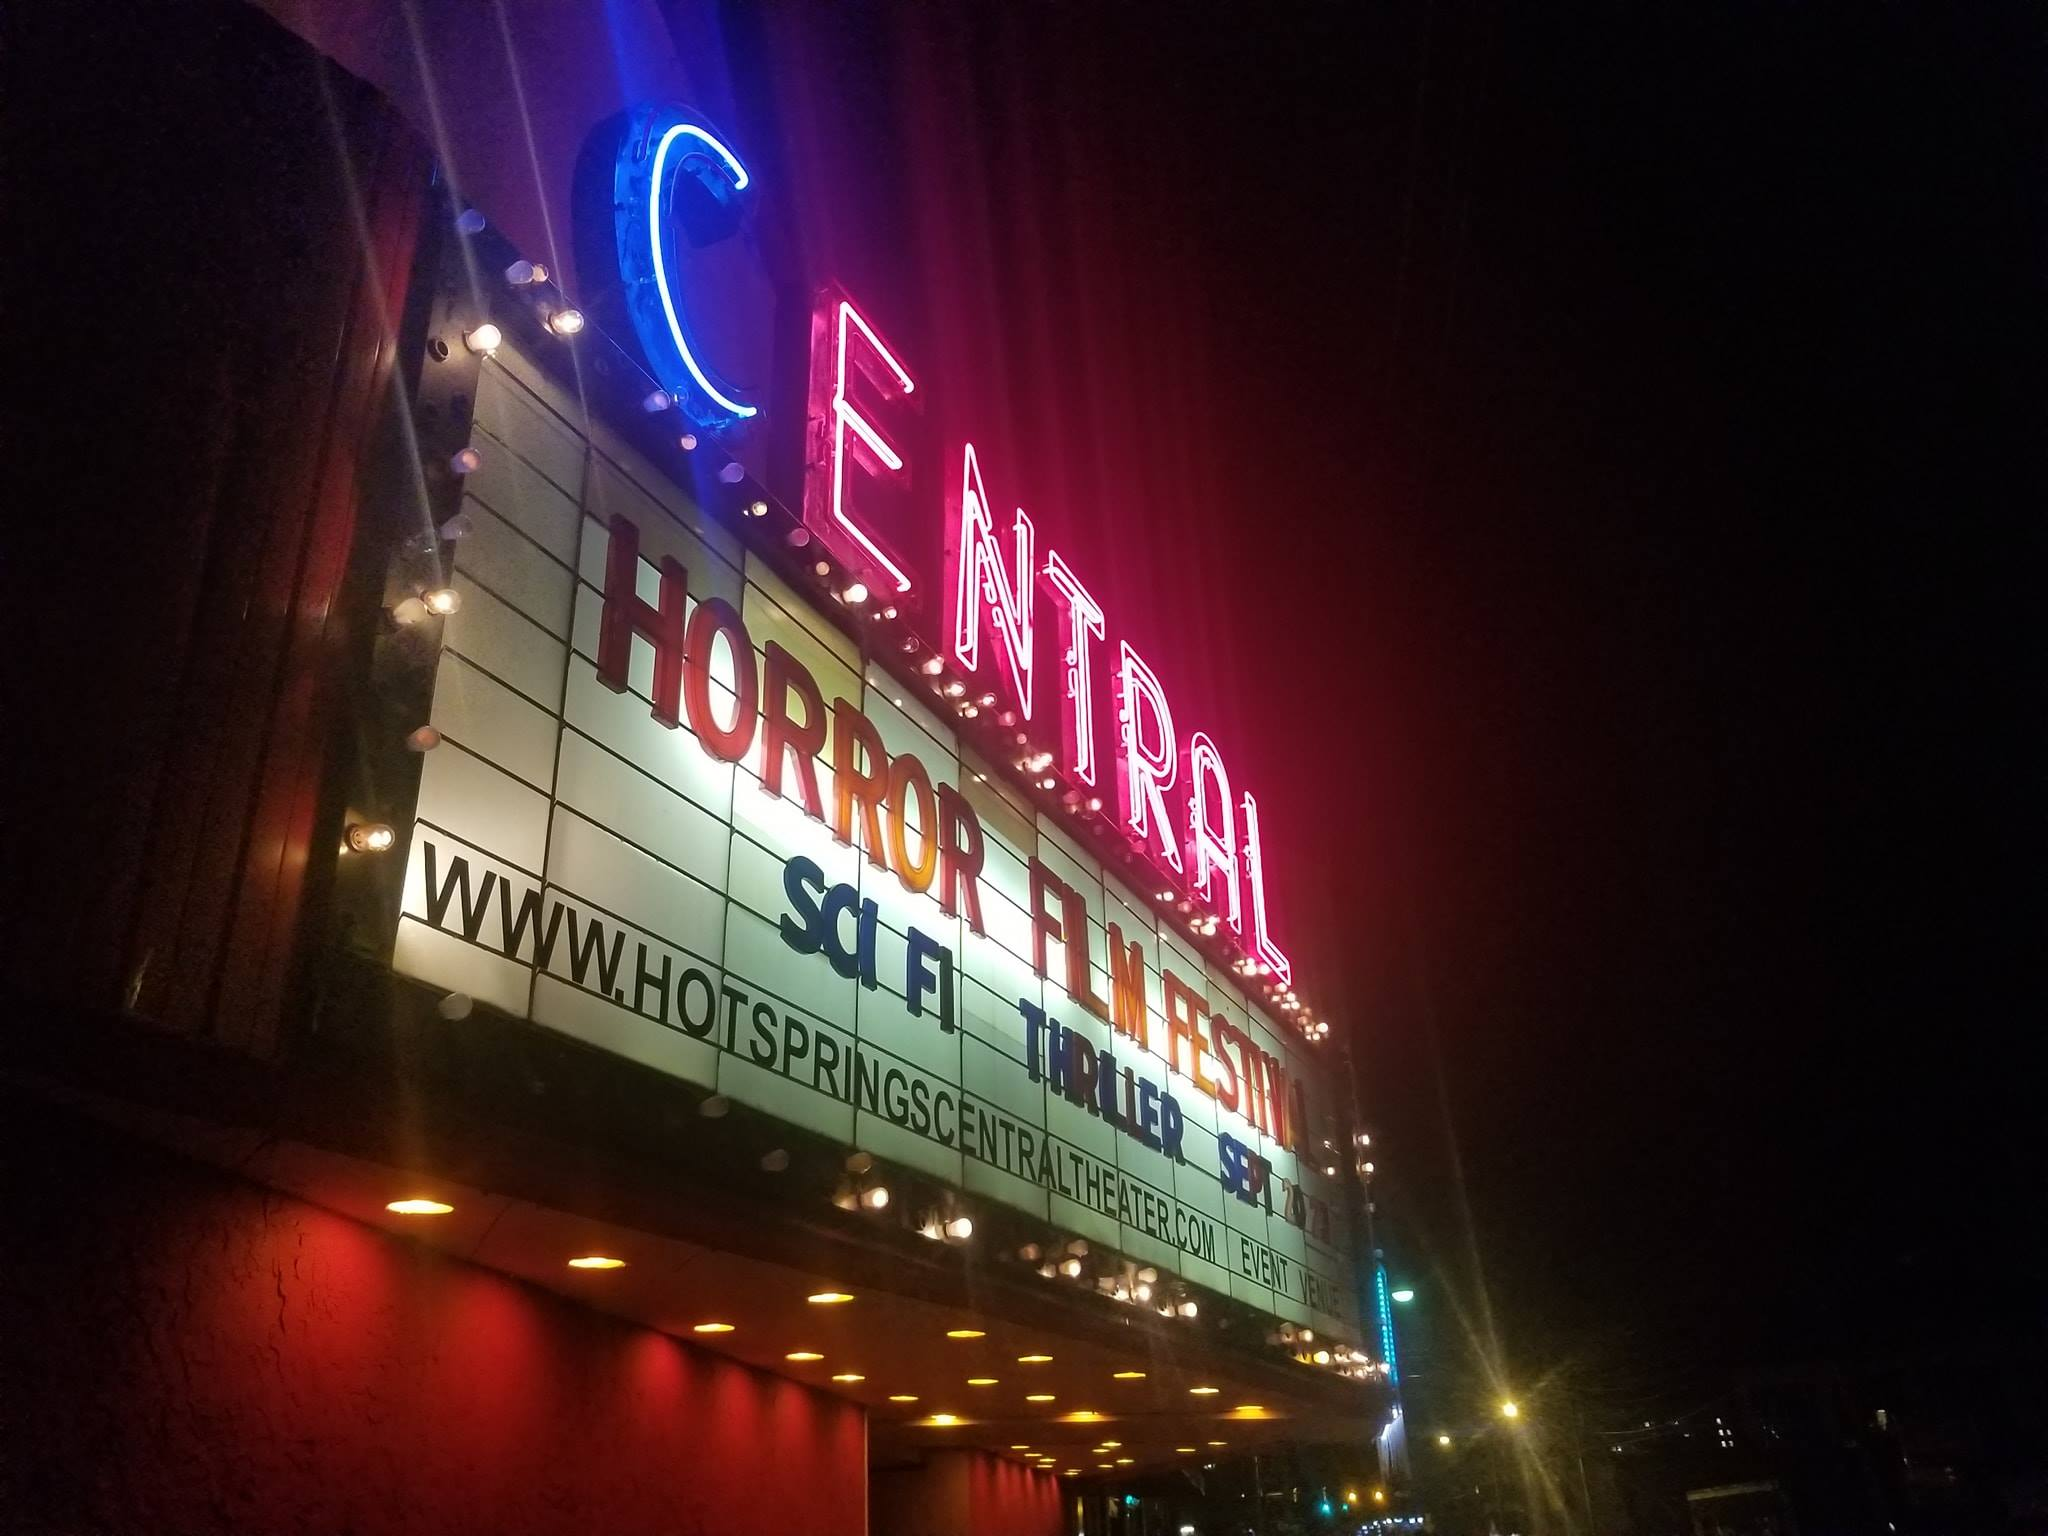 Central Theater    - Home of Hot Springs Horror Film Festival